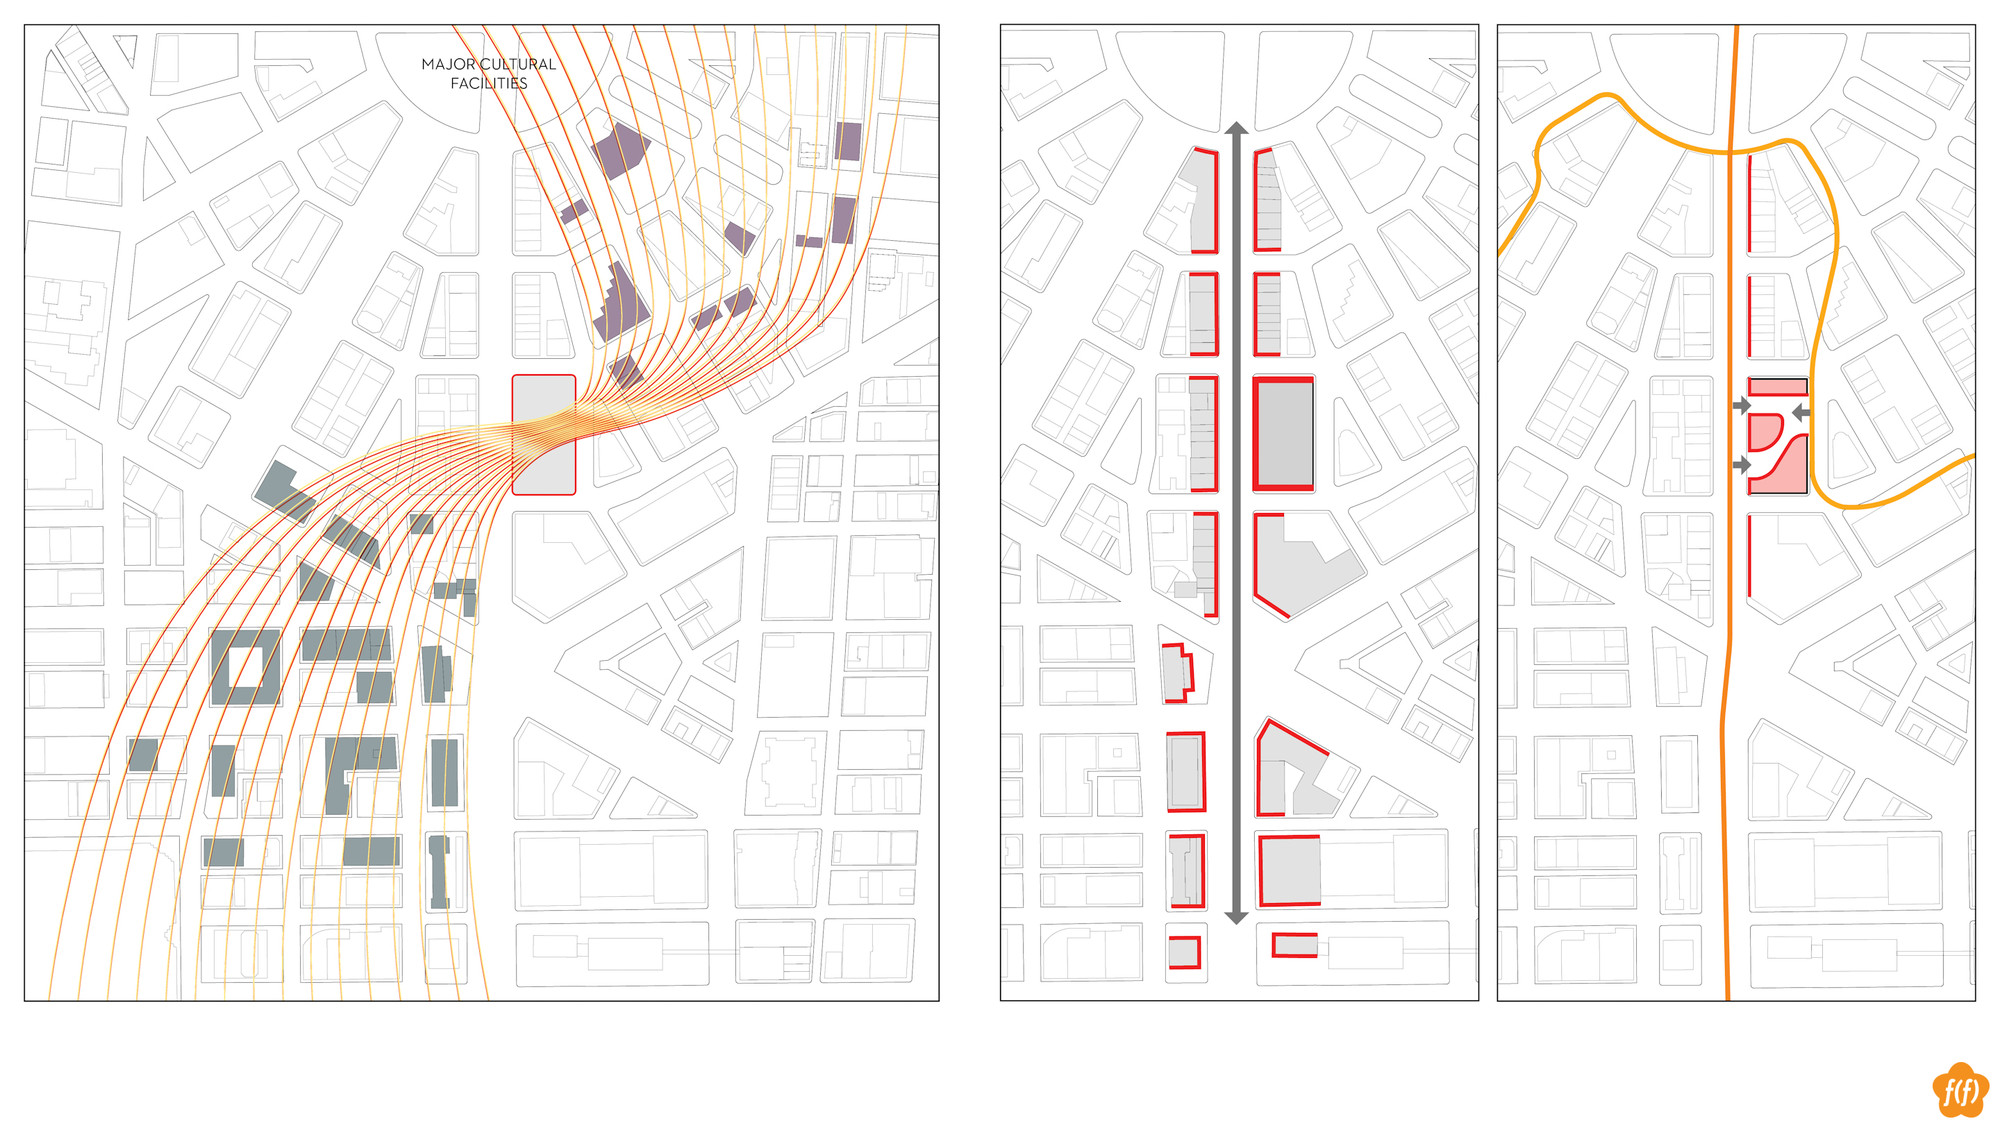 medium resolution of  redesigning detroit a new vision for an iconic site competition entry plan